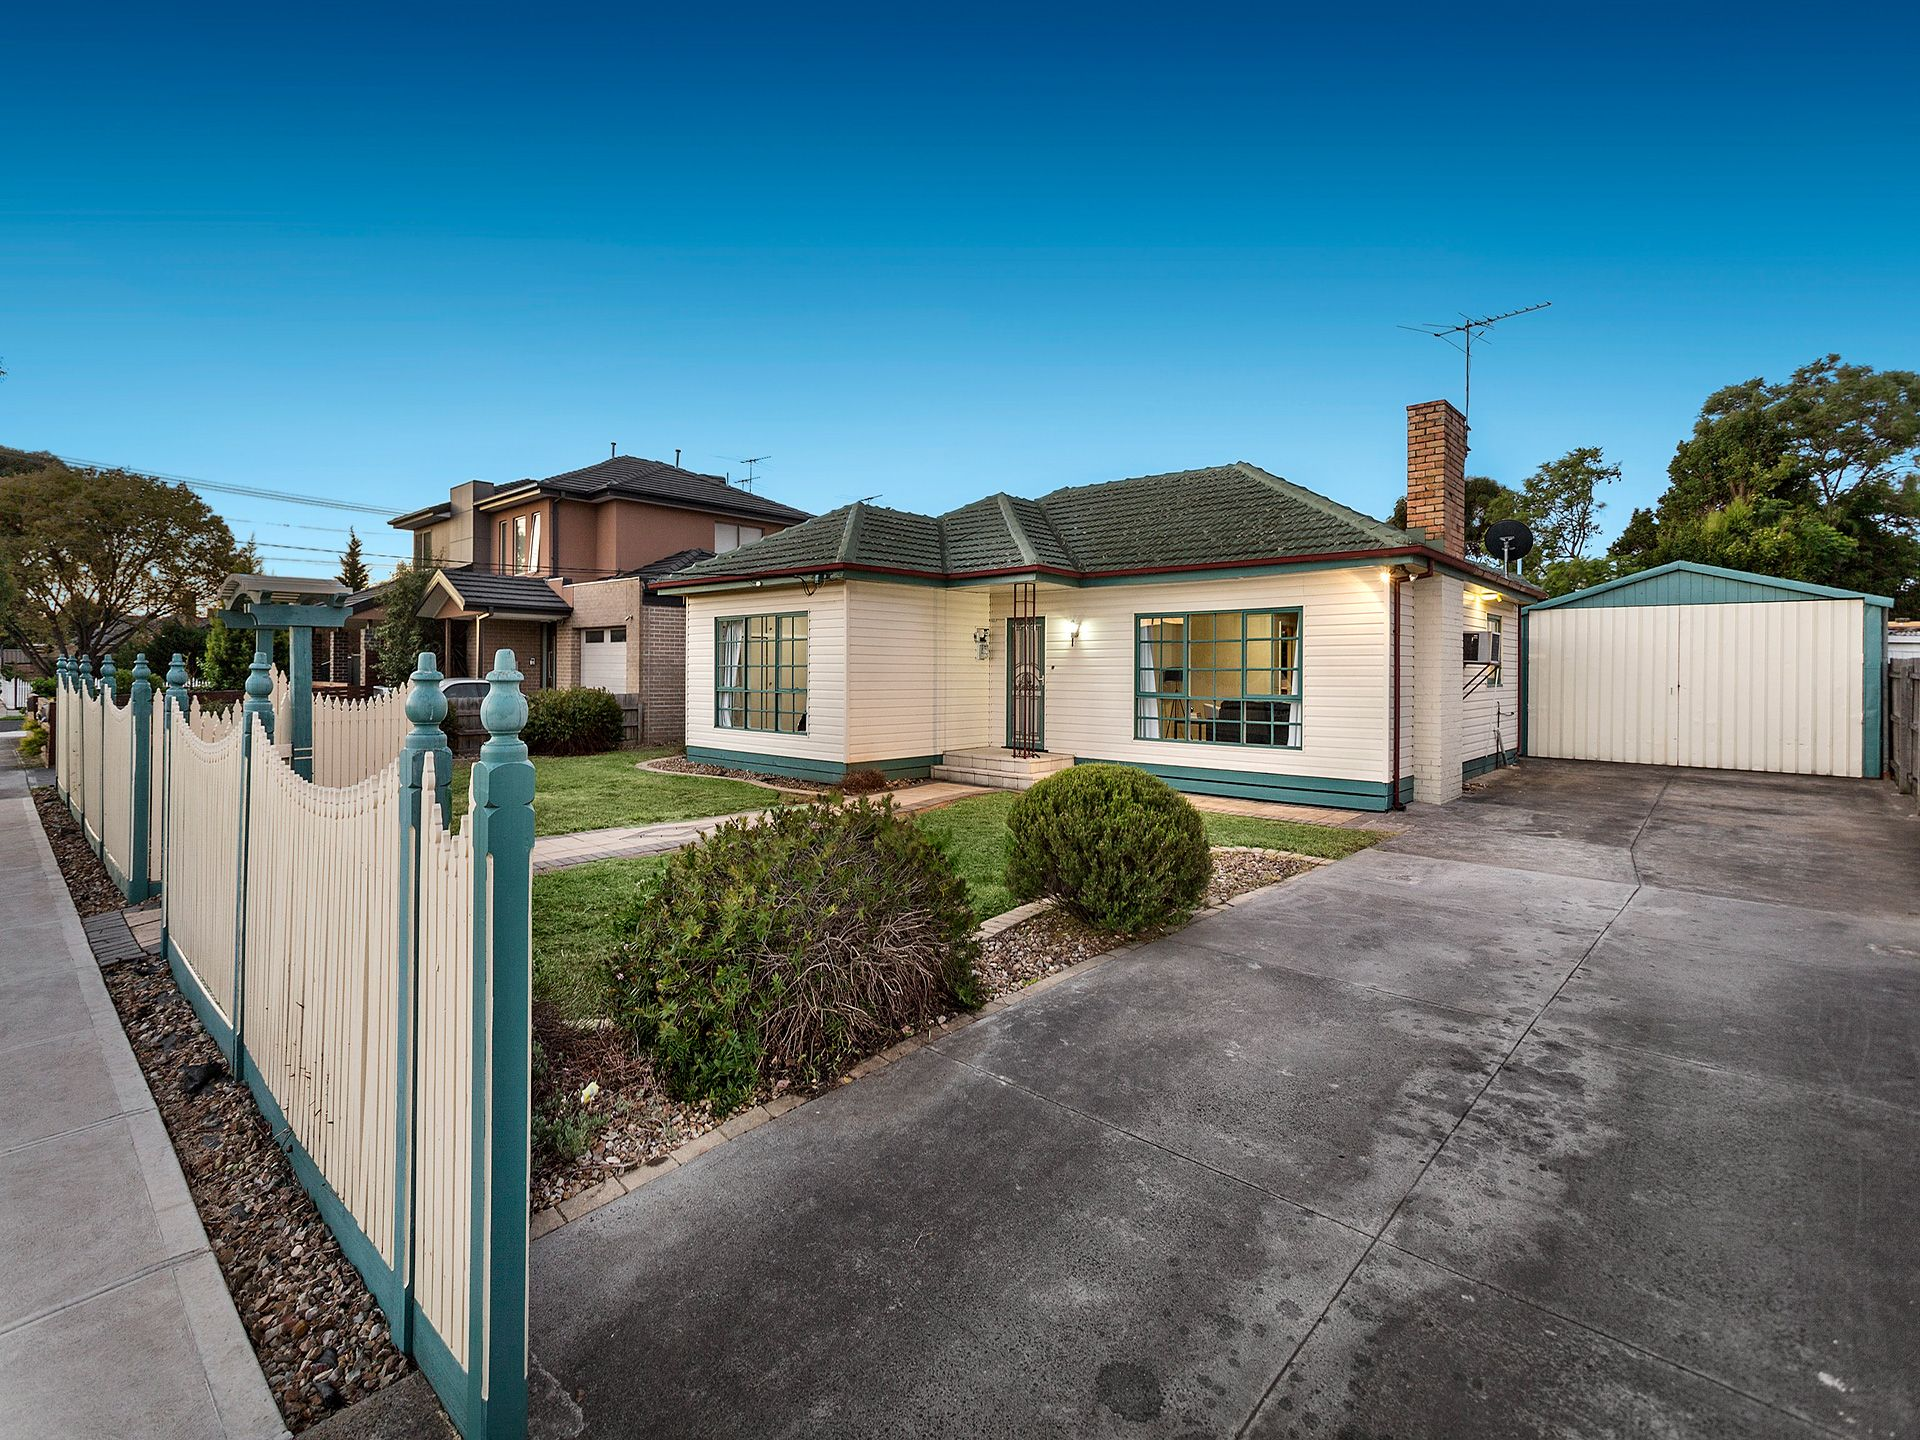 12 St James Street, HADFIELD, VIC, 3046 - Image